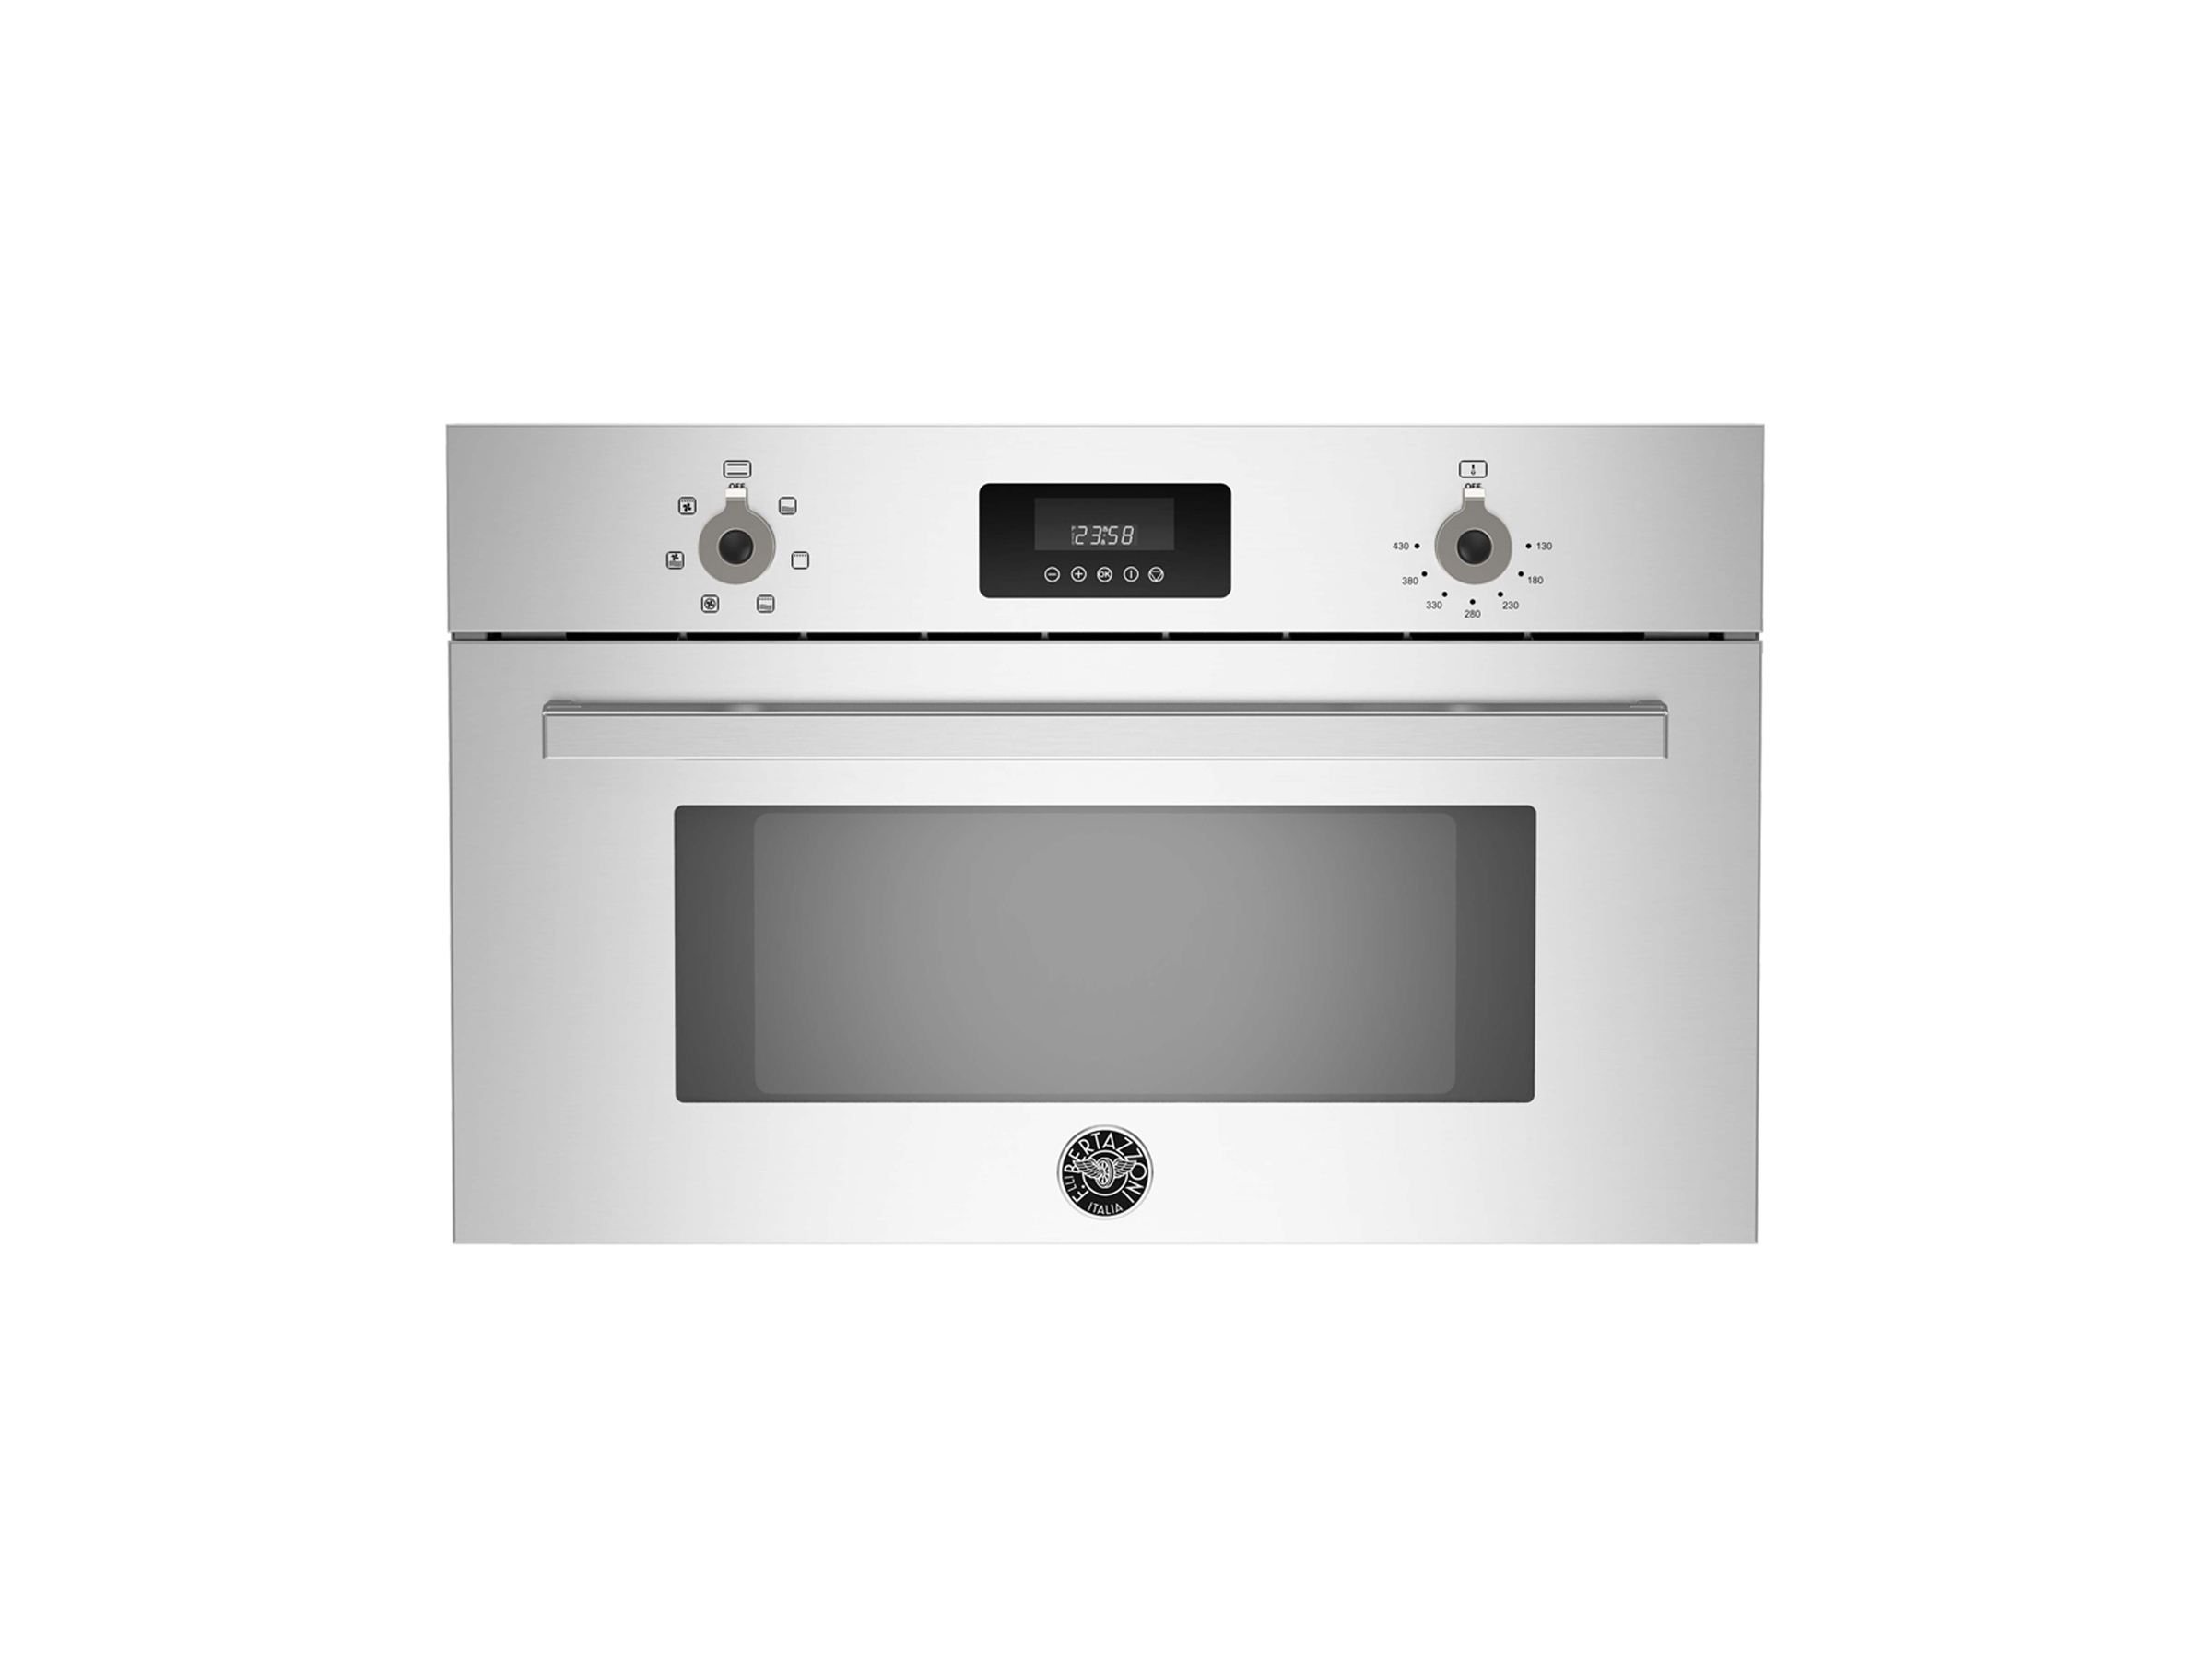 30 Convection Speed Oven | Bertazzoni - Stainless